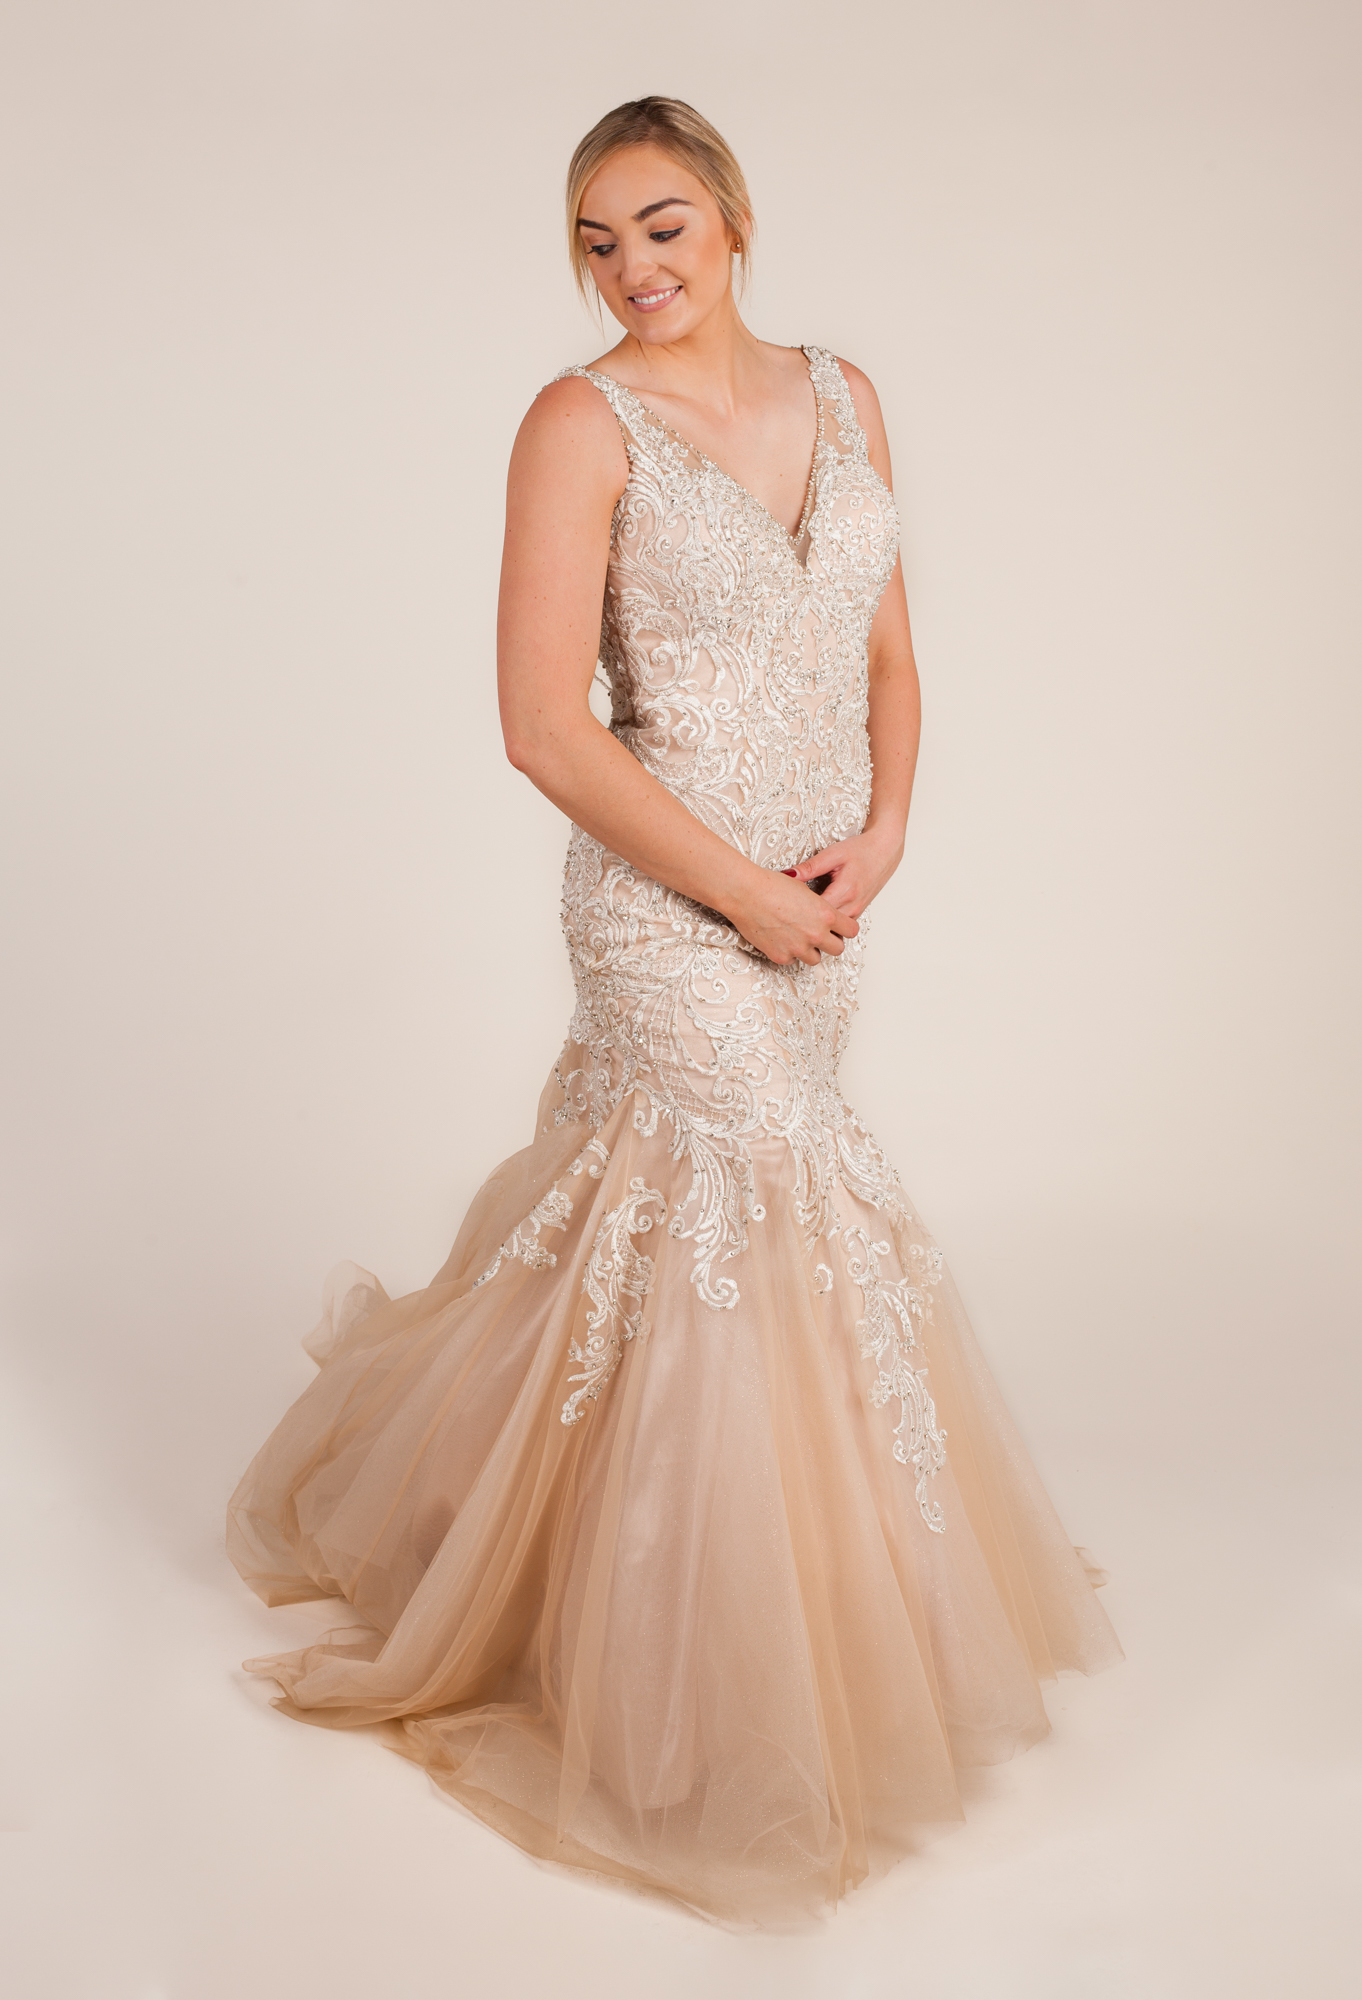 Allure bridals - C388 size 0 - $1125 - (55% OFF)